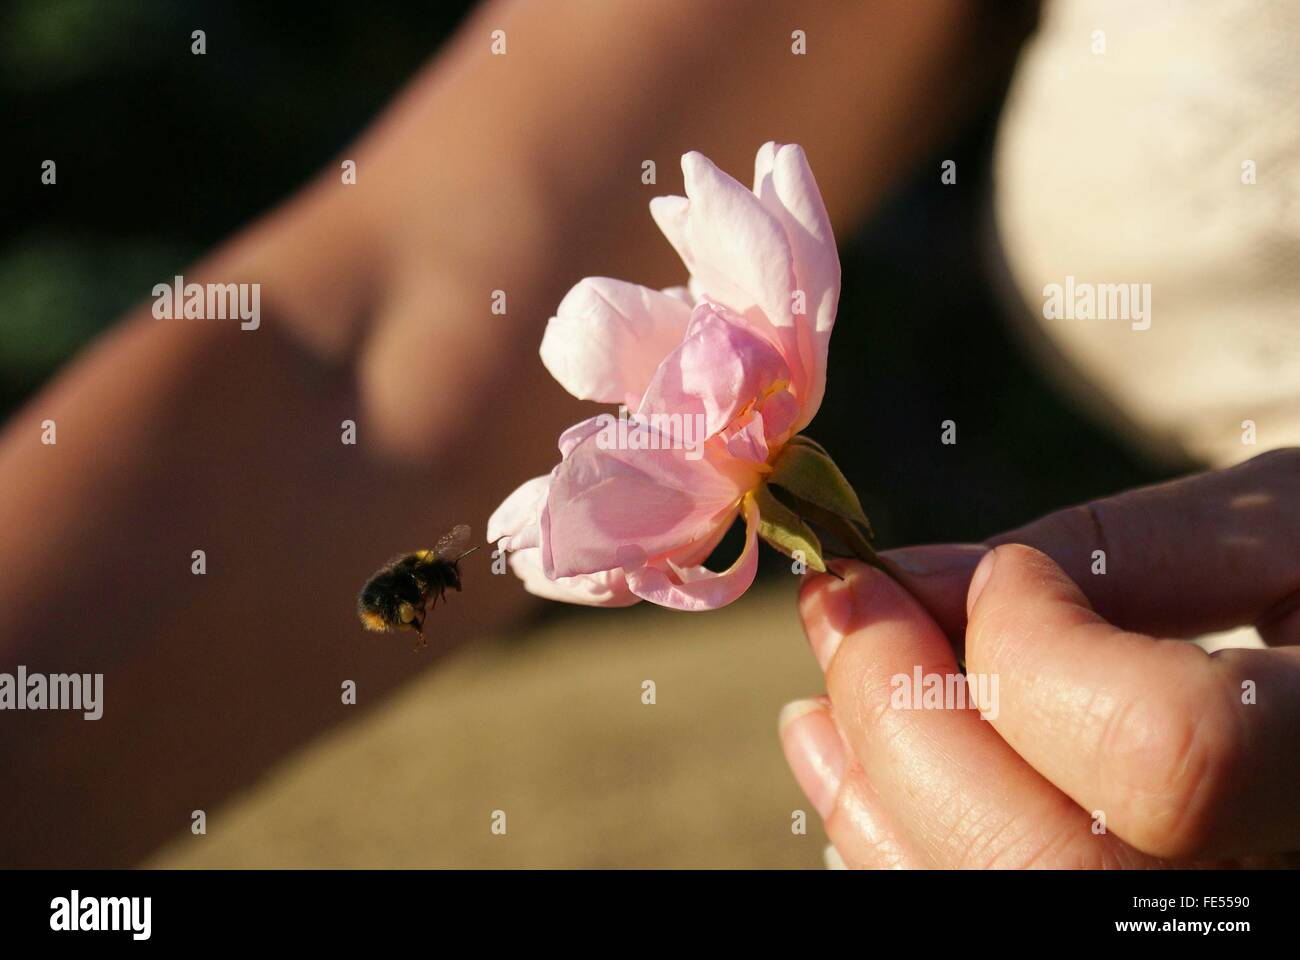 Cropped Image Of Woman Holding Pink Flower While Honey Bee Buzzing Around It - Stock Image